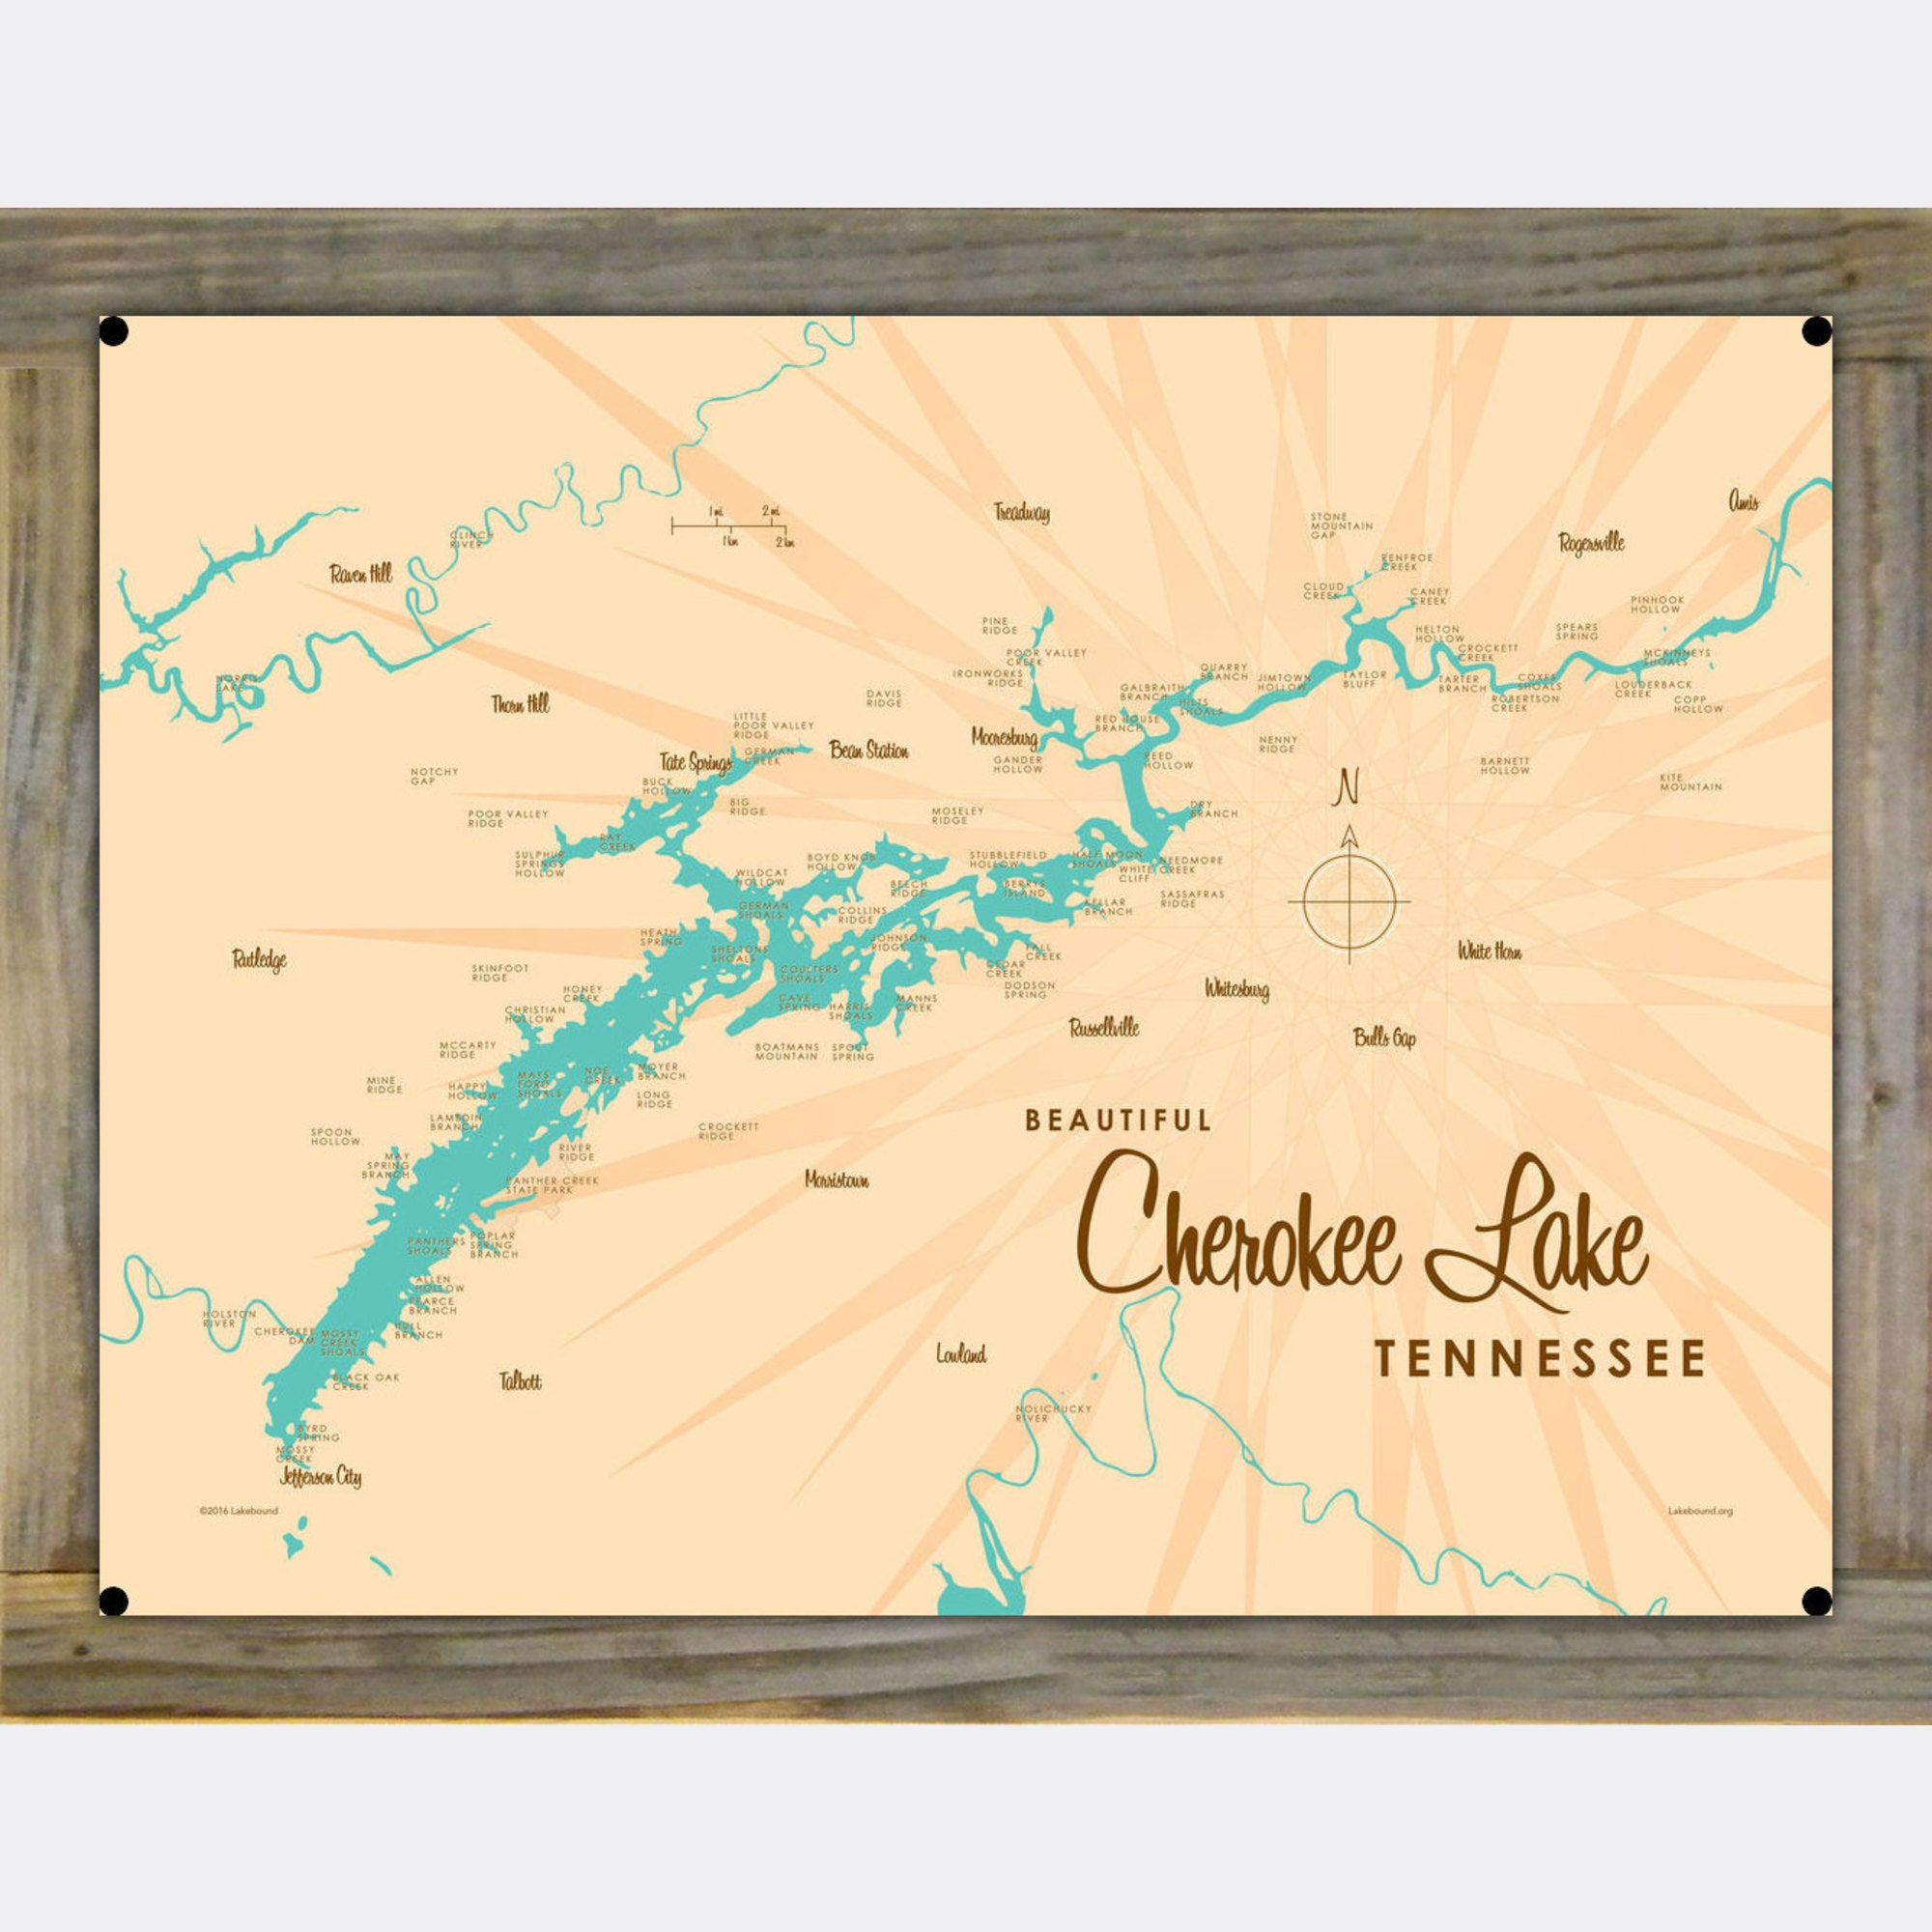 Cherokee Lake Tennessee, Wood-Mounted Metal Sign Map Art